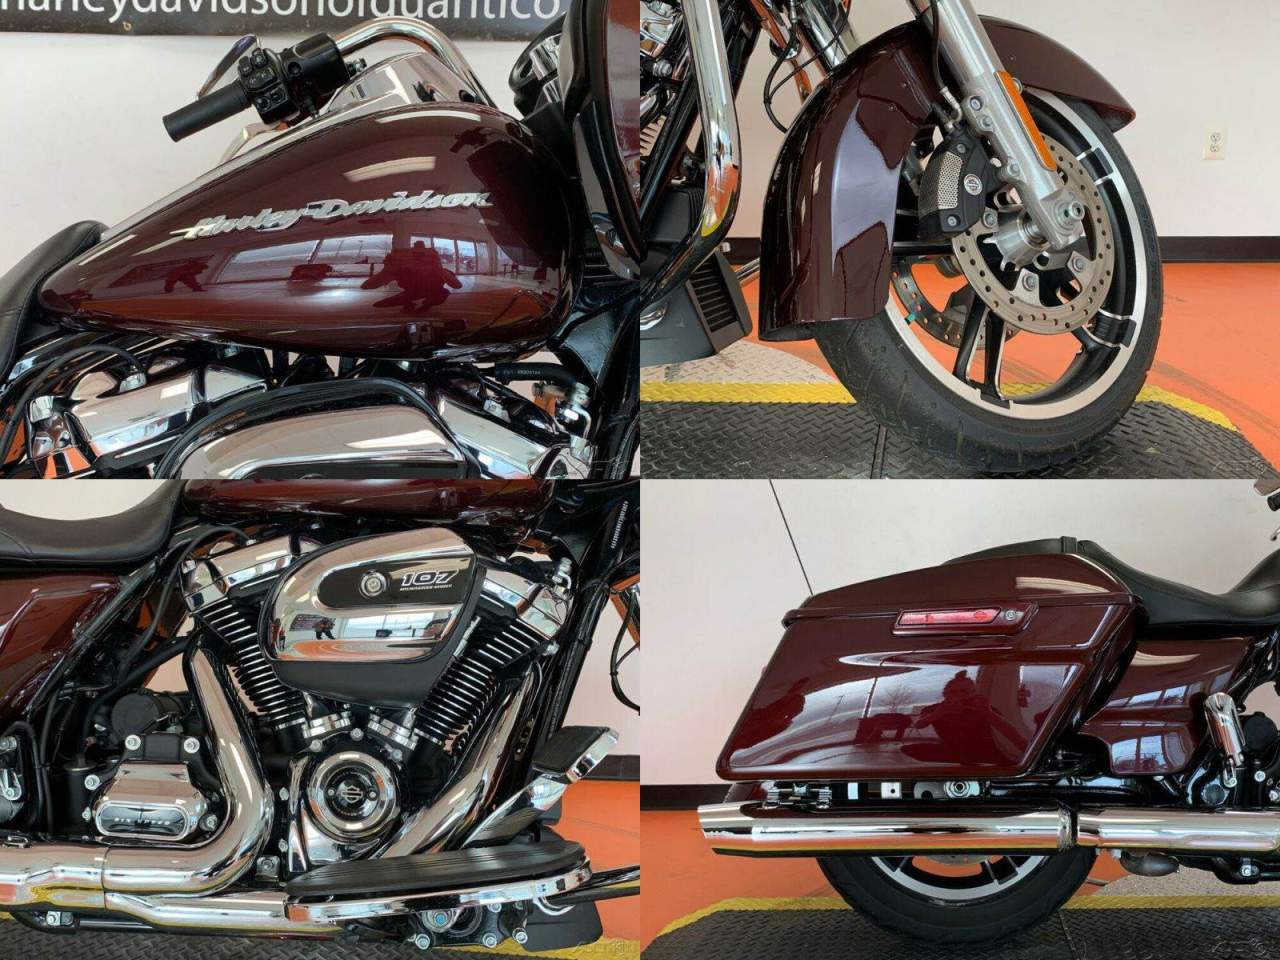 2019 Harley-Davidson Touring Road Glide Twisted Cherry used for sale near me